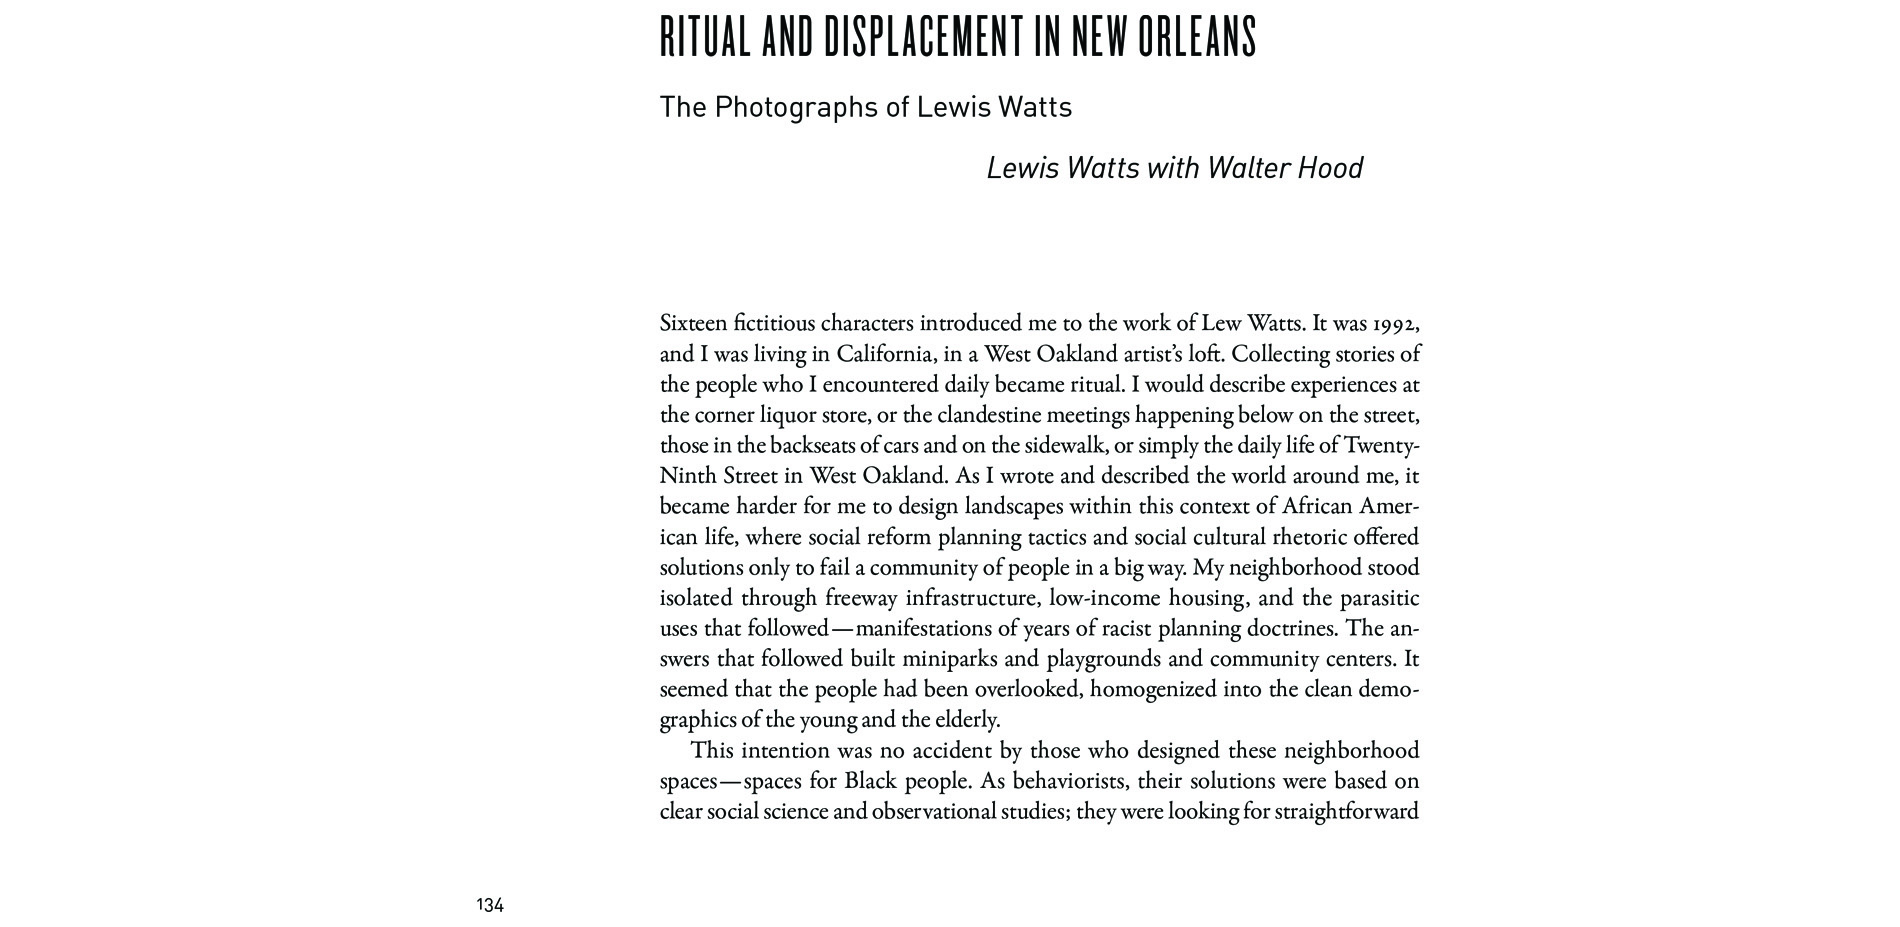 Black Landscapes Matter, Ritual and Displacement in New Orleans: The Photographs of Lewis Watts (pg. 134)